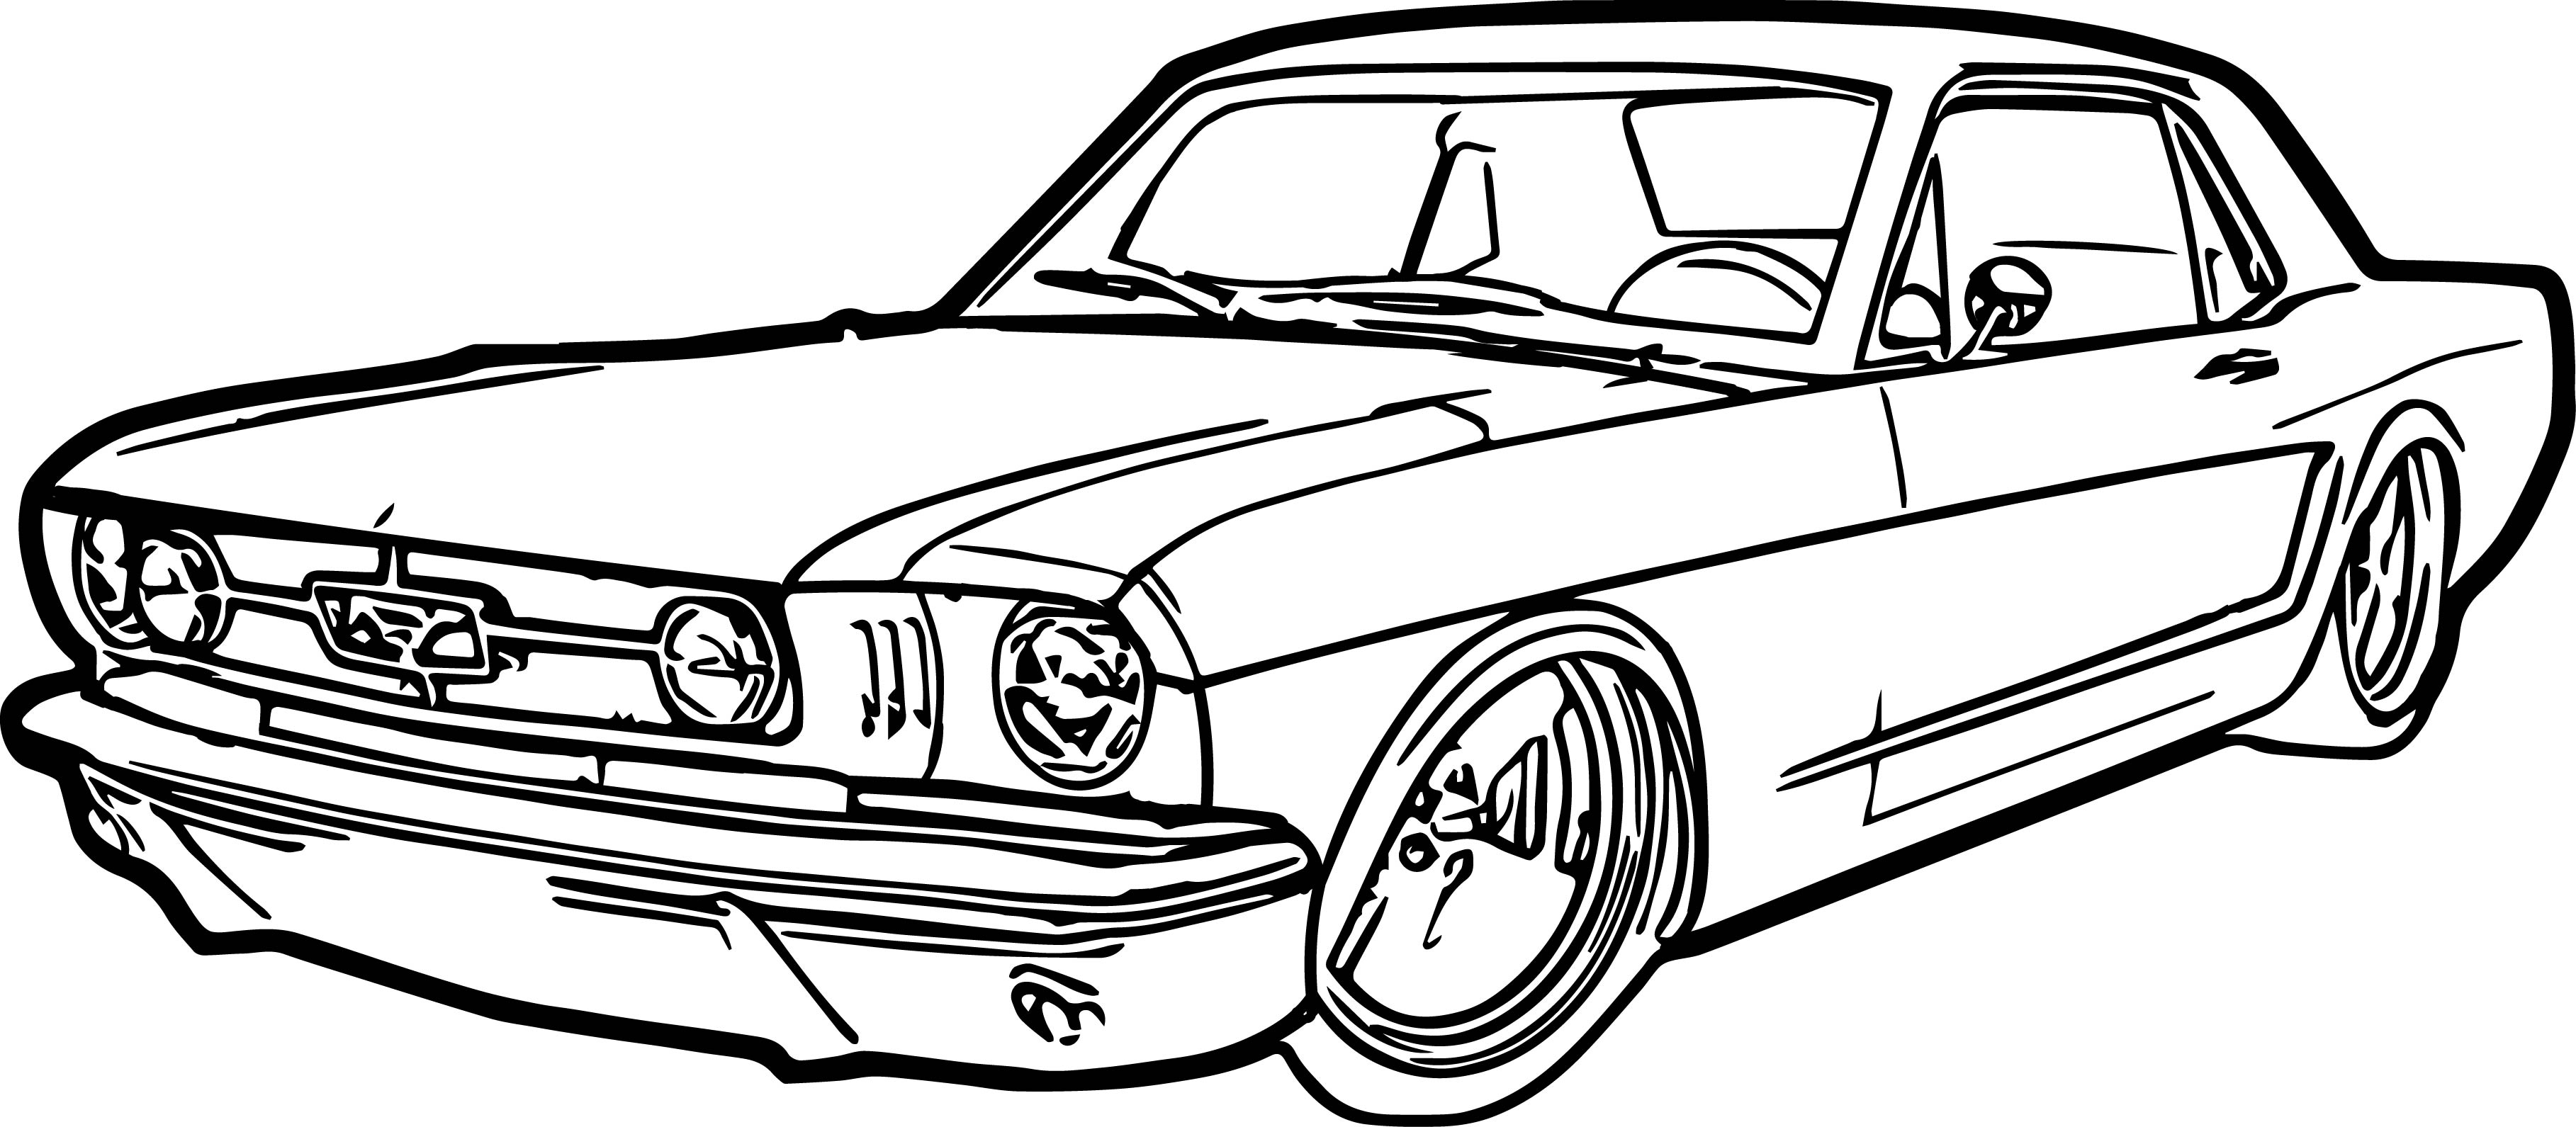 Car Coloring Pages : Ford mustang car coloring page wecoloringpage